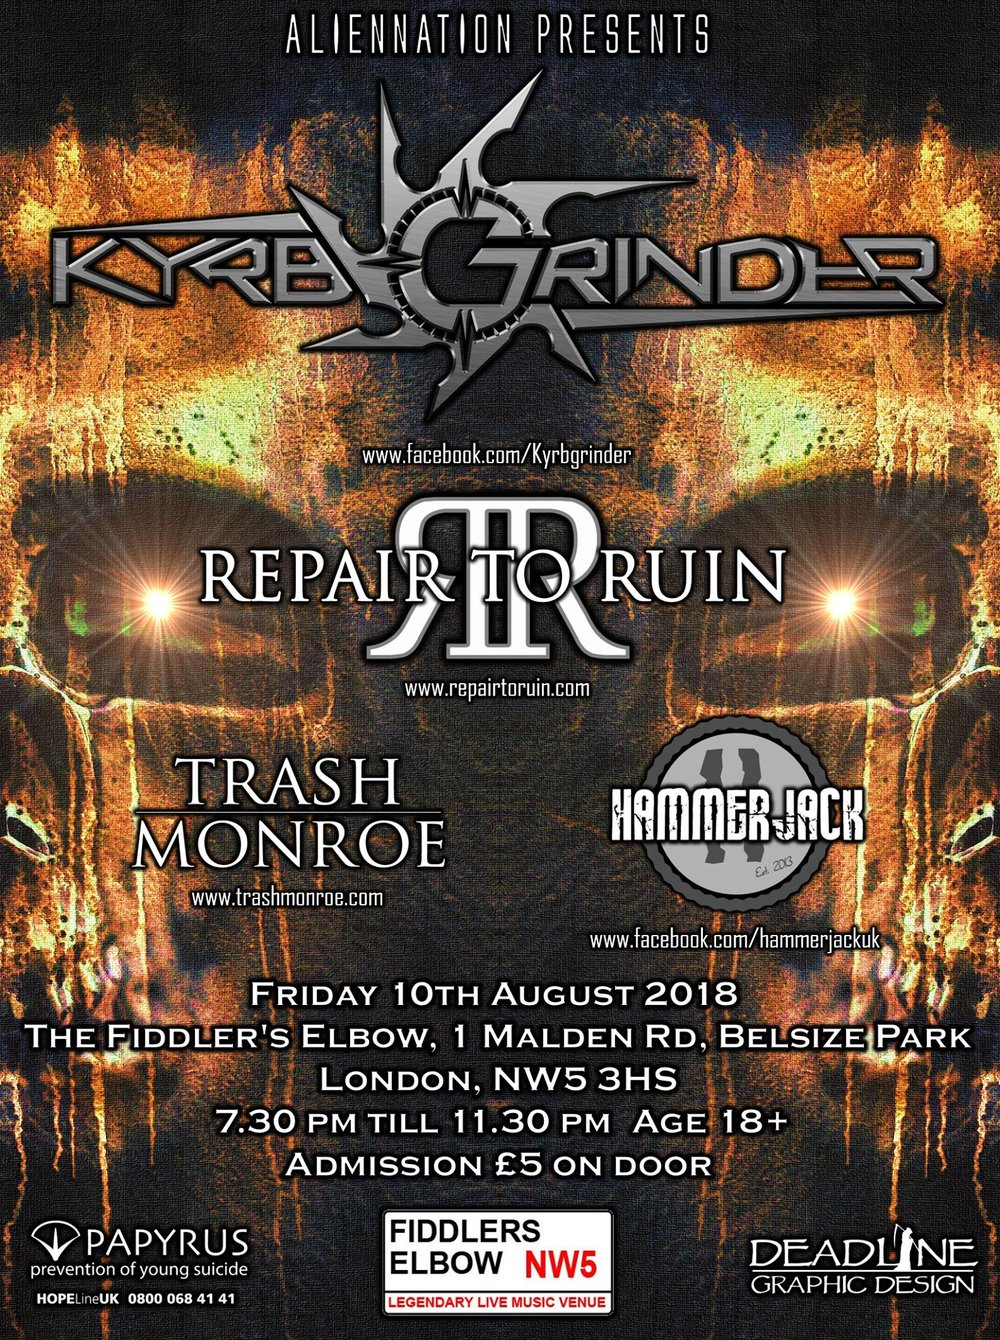 Alien Nation - Kyrbgrinder/RepairToRuin/TrashMonroe/Hammerjack at The Fiddler's Elbow promotional image